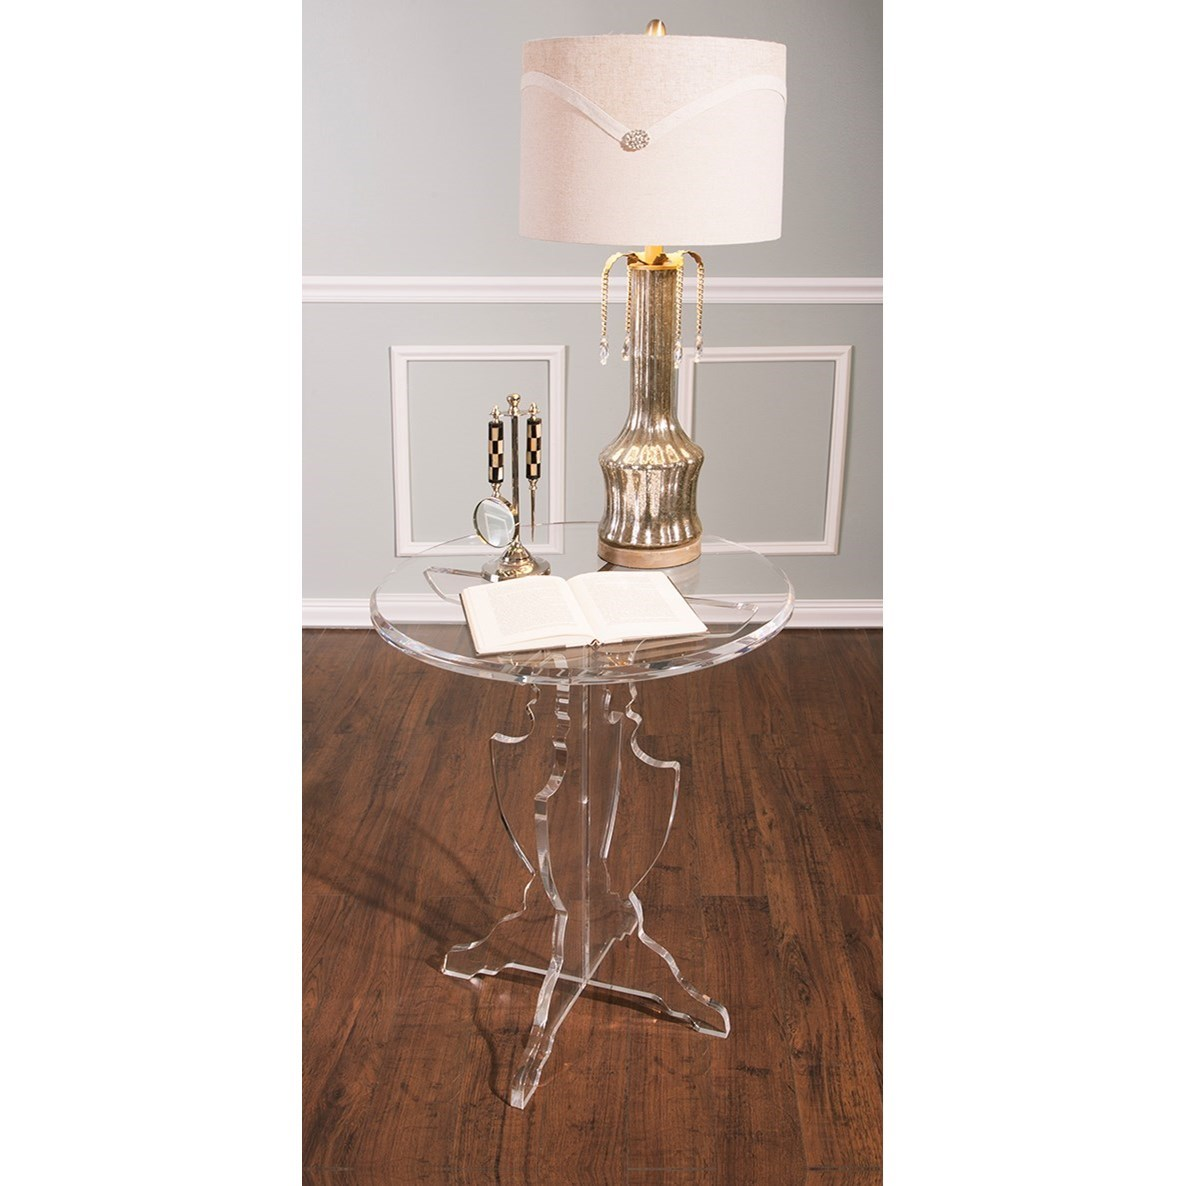 Becky Fletcher Bejeweled Table Lamp by IMAX Worldwide Home at Alison Craig Home Furnishings